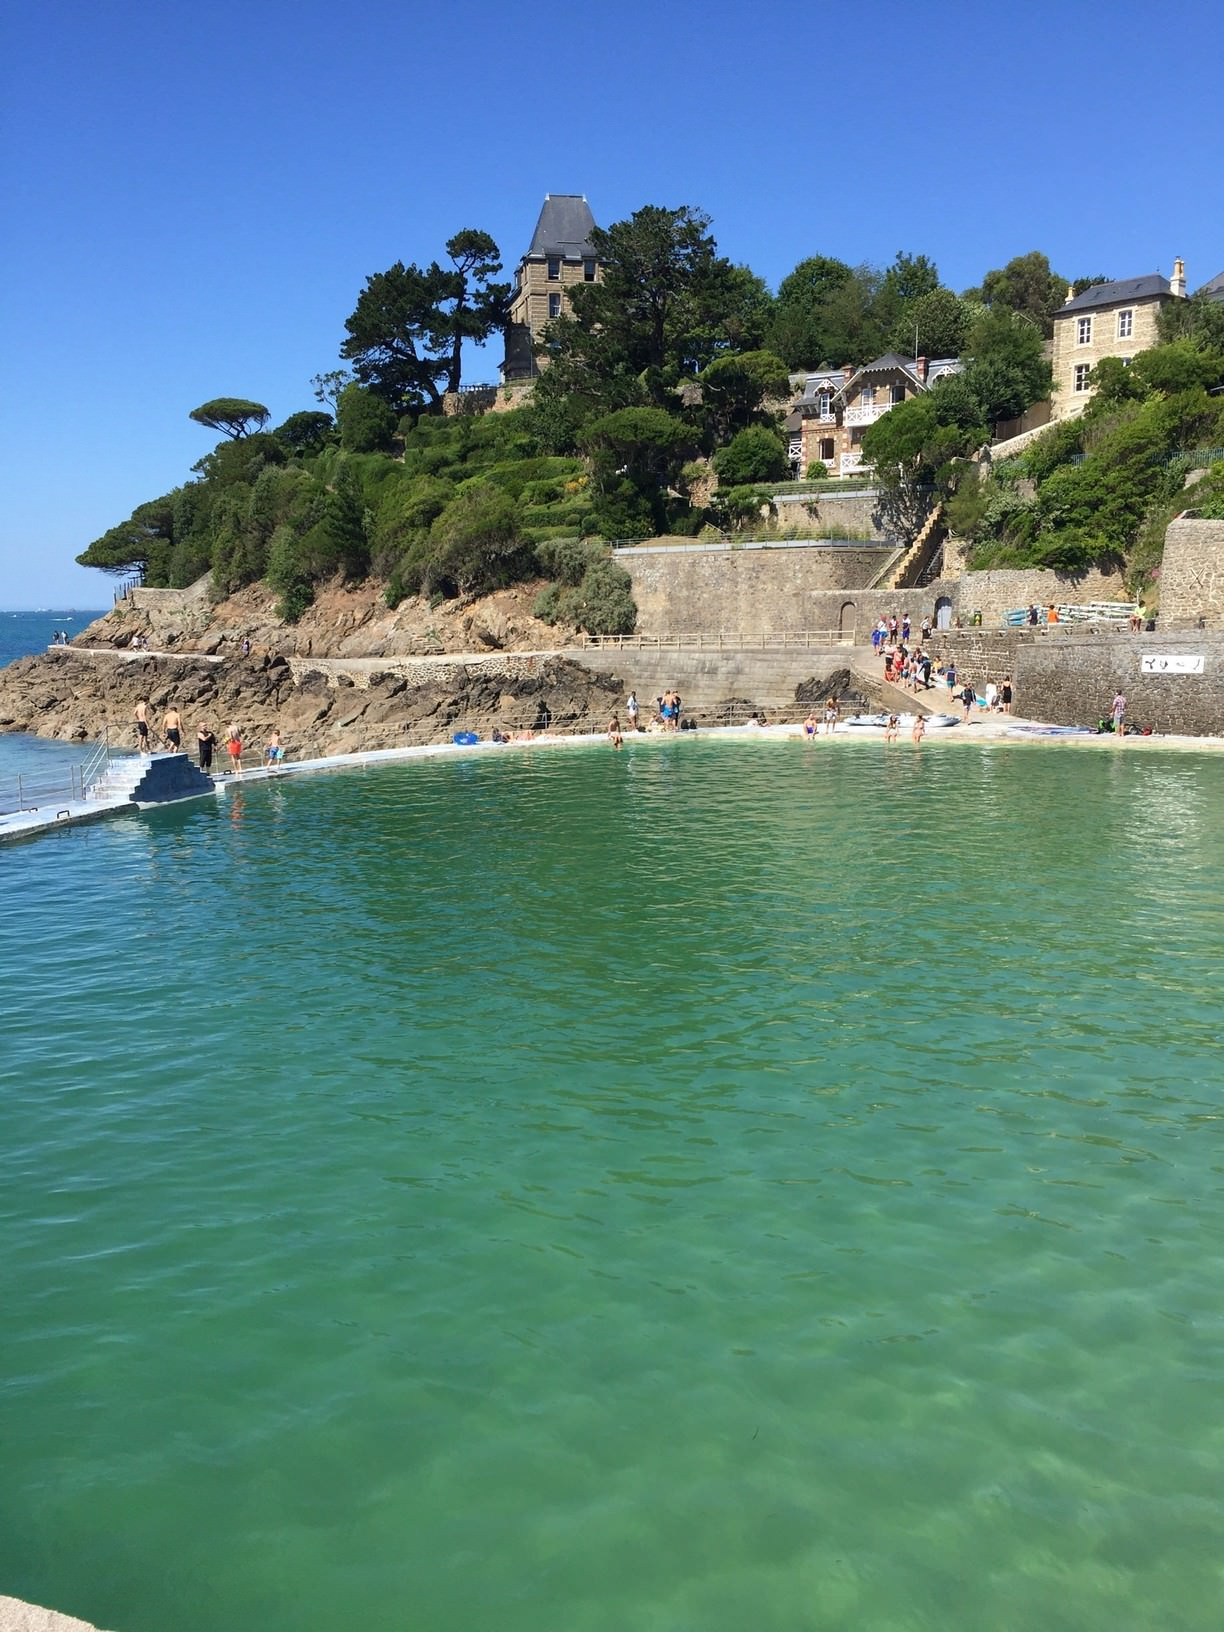 Piscine De Mer, Dinard, France - Sea Water Pool In Dinard ... destiné Piscine St Malo